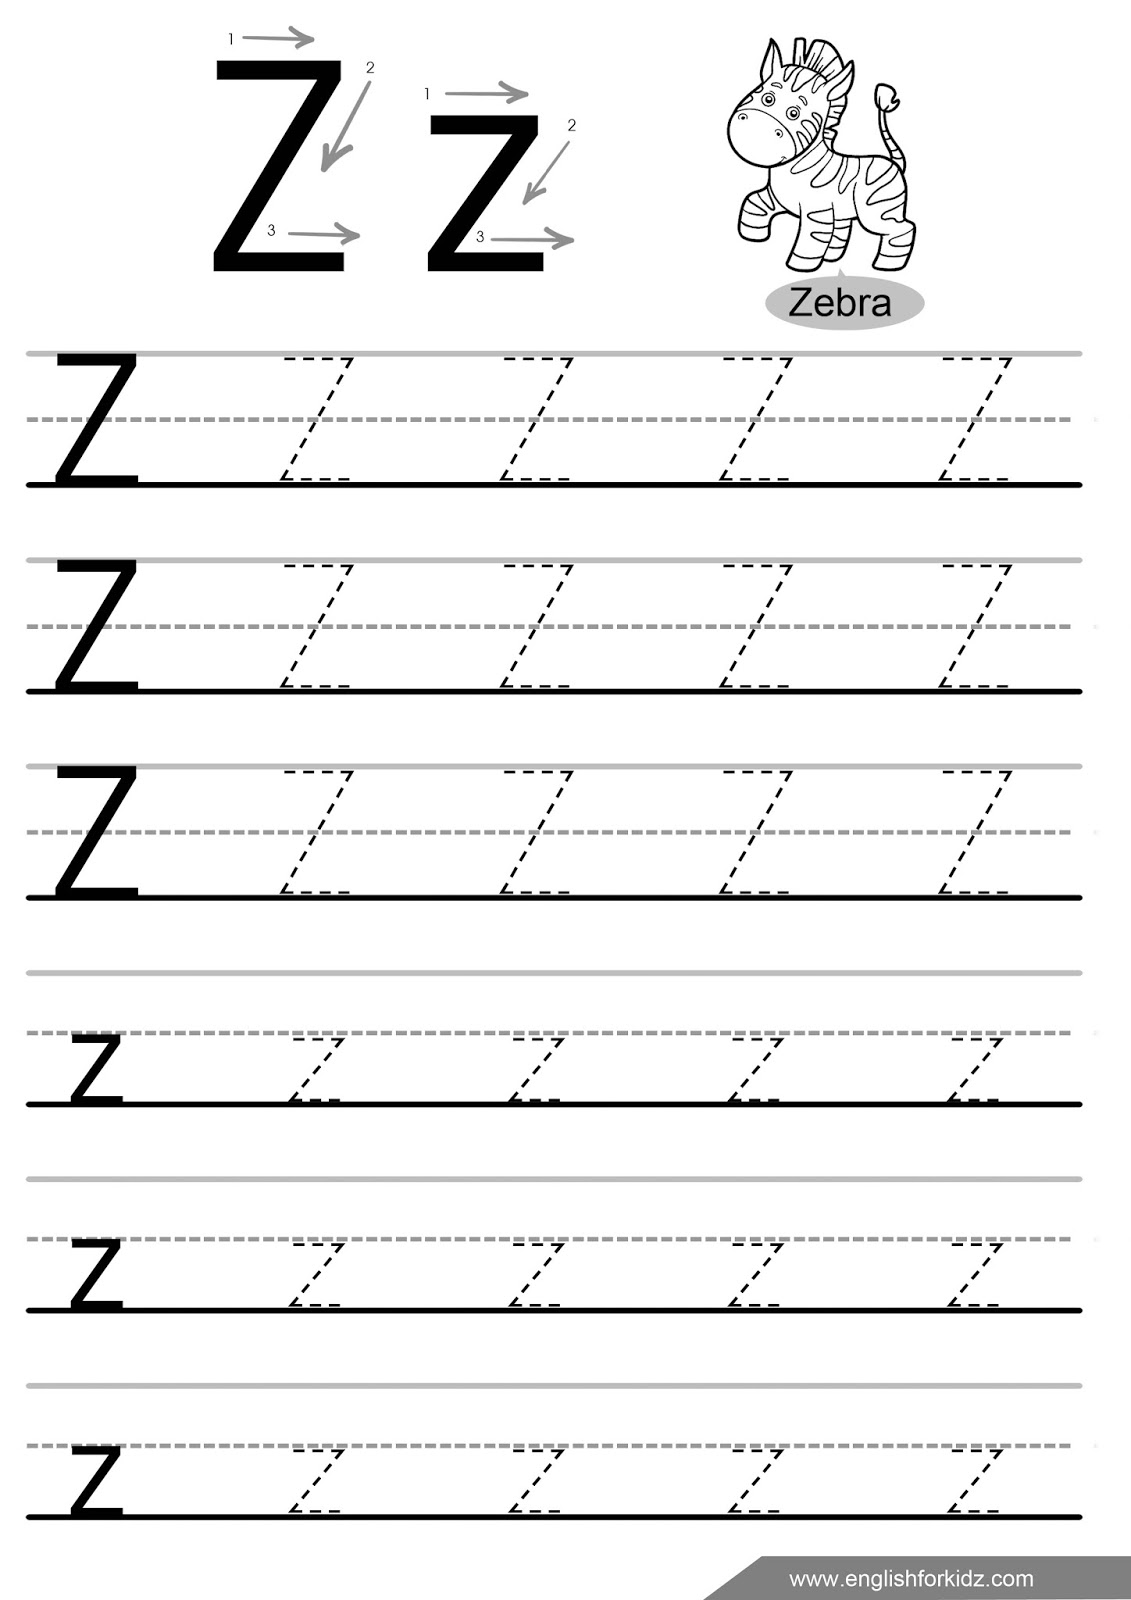 Printable Letters A Z Tracing Worksheets : Letter tracing worksheets letters u z